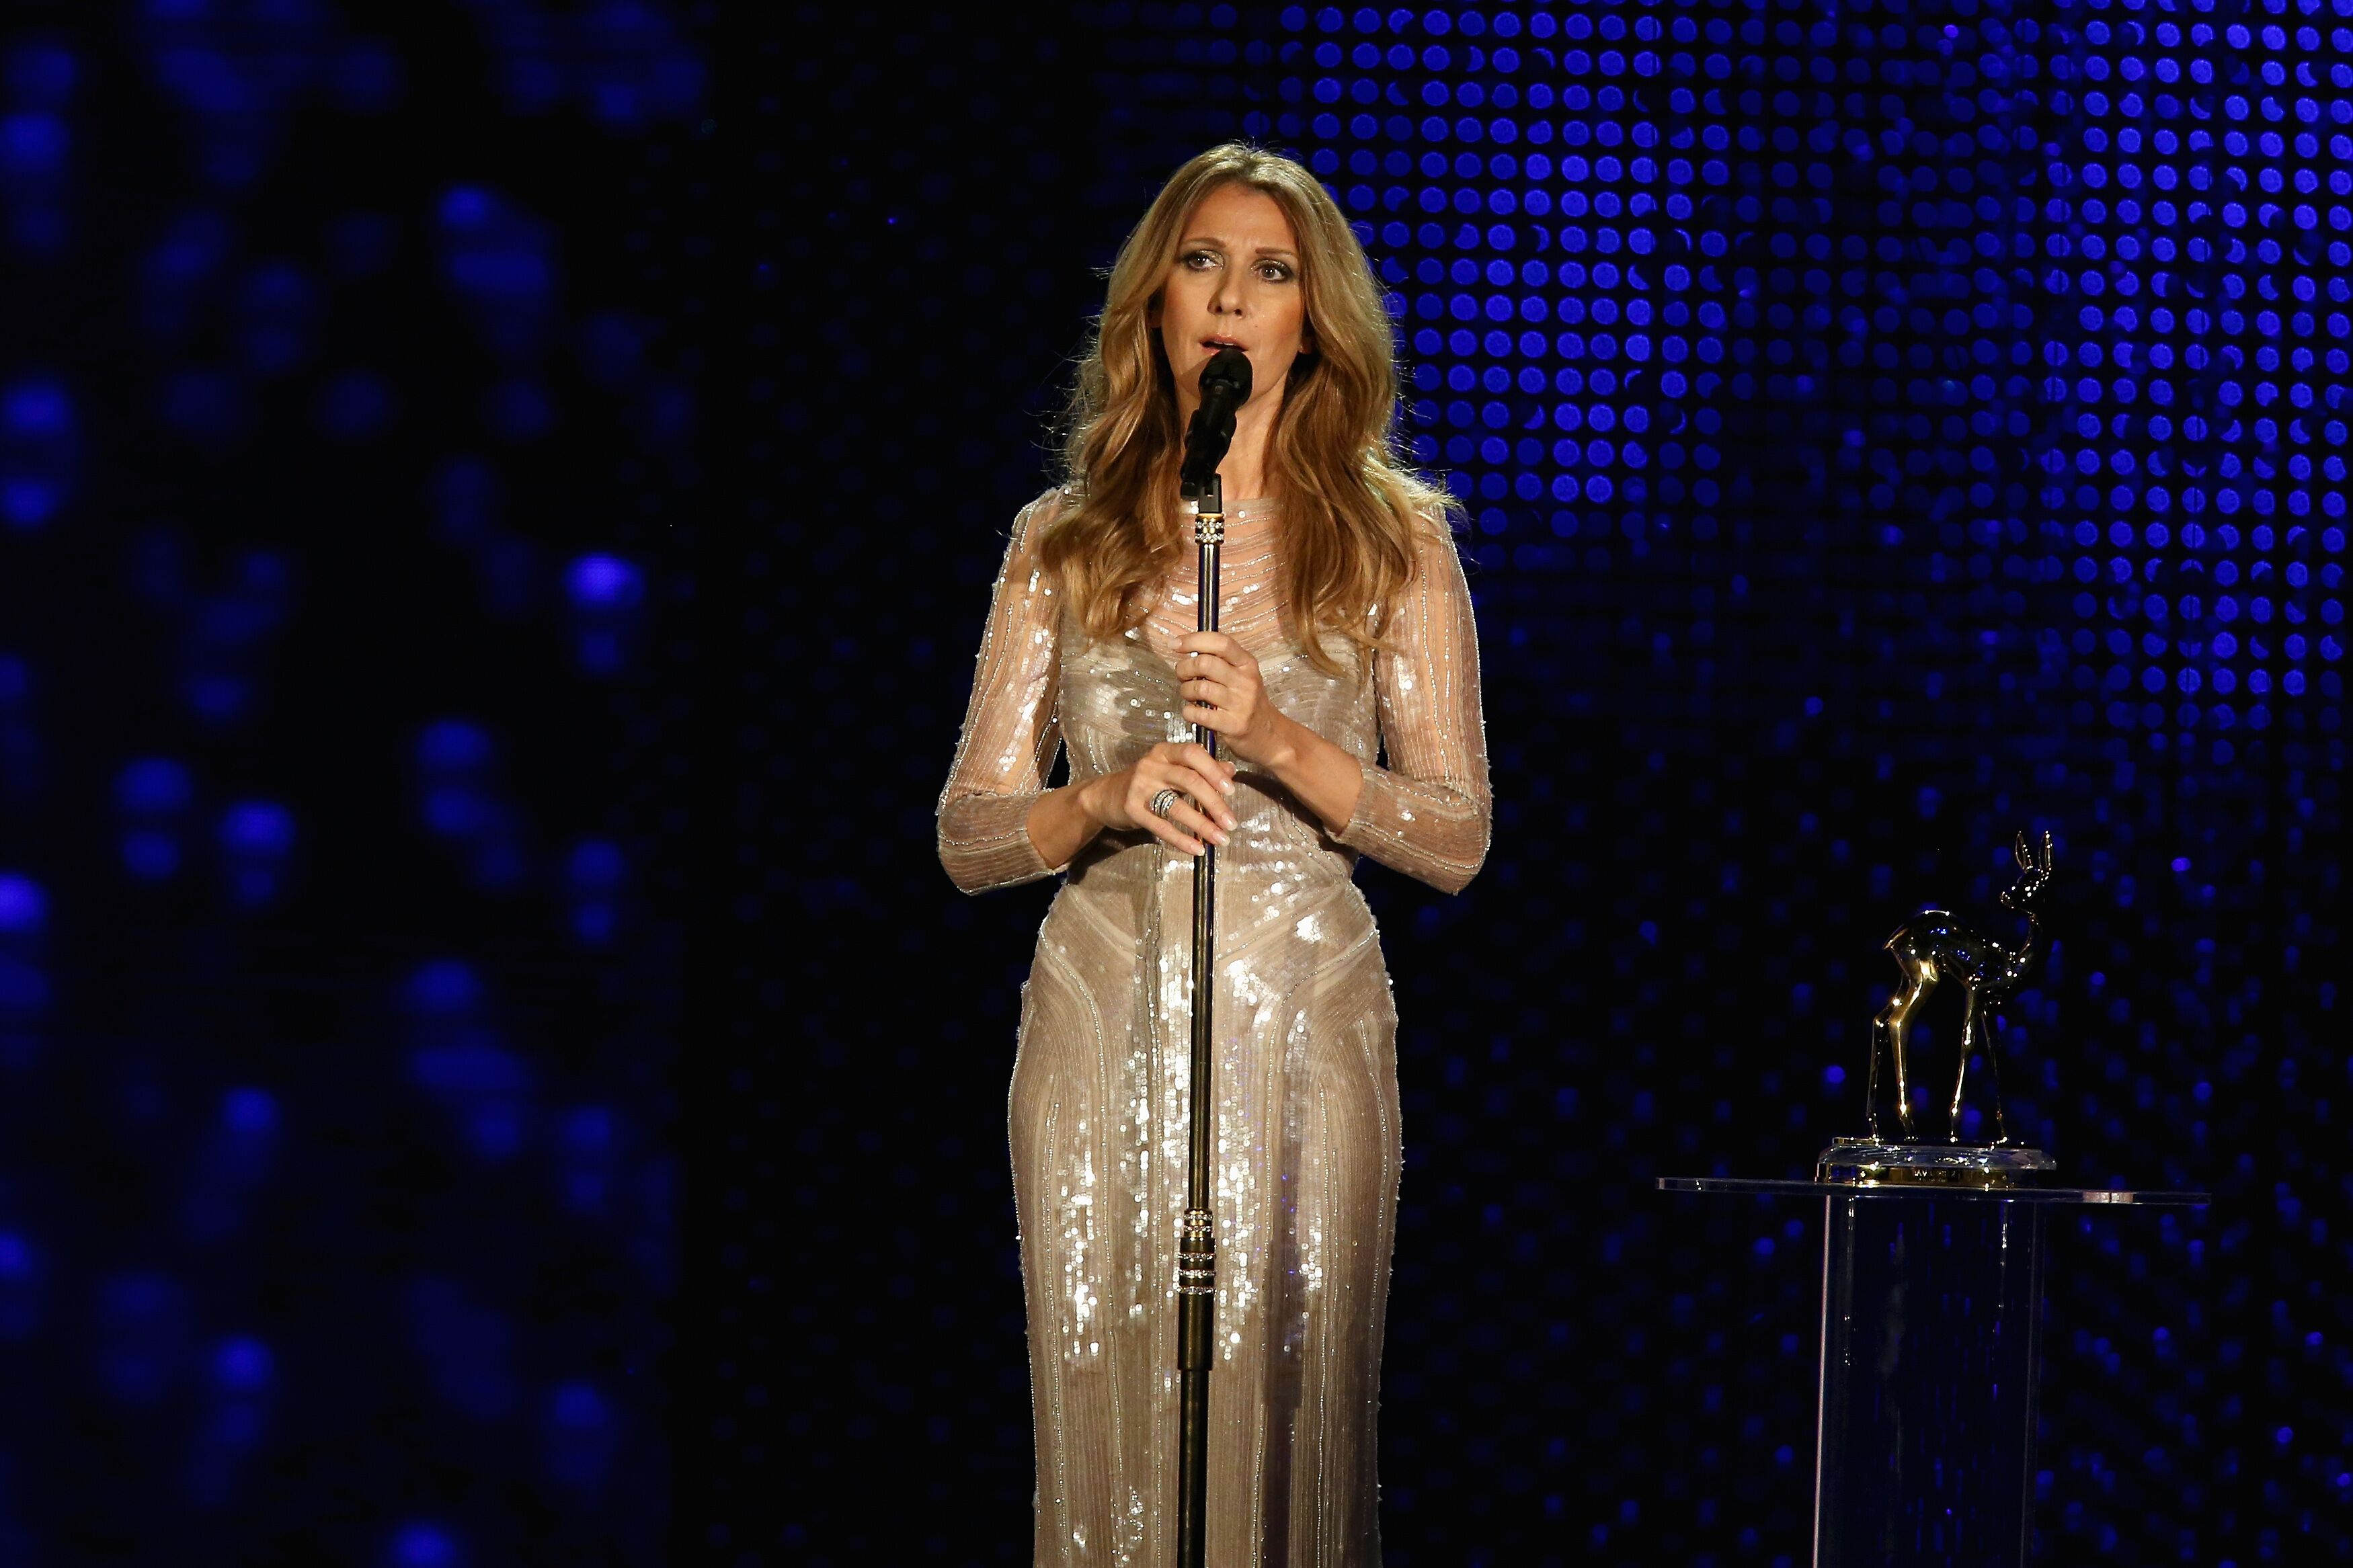 Celine Dion performs during the 'BAMBI Awards 2012' at the Stadthalle Duesseldorf on November 22, 2012 in Duesseldorf, Germany | Photo: Getty Images